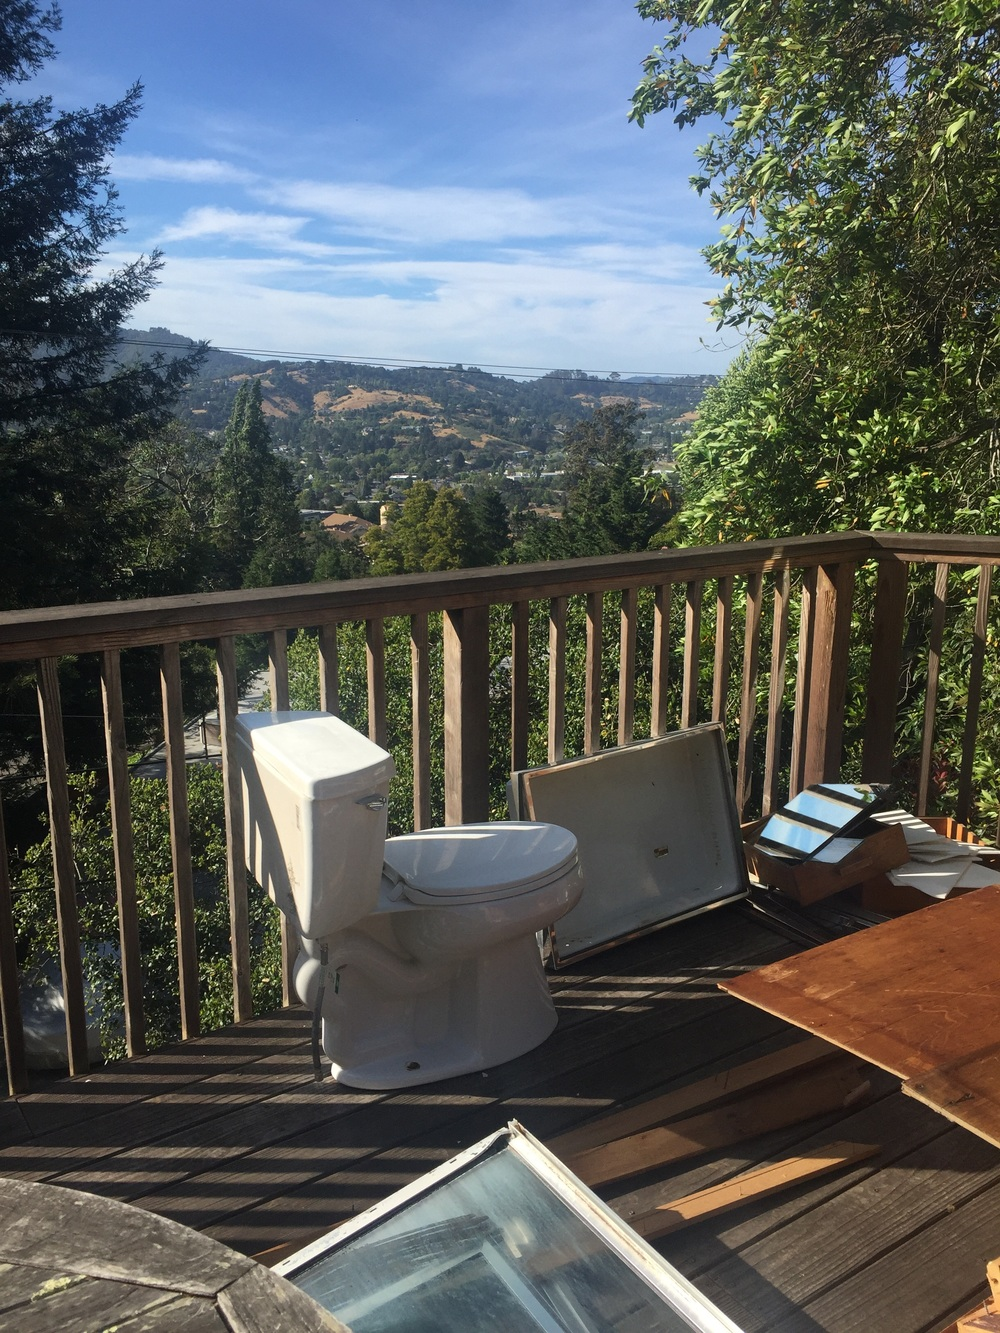 Bathroom with a view? Or remodel in progress.